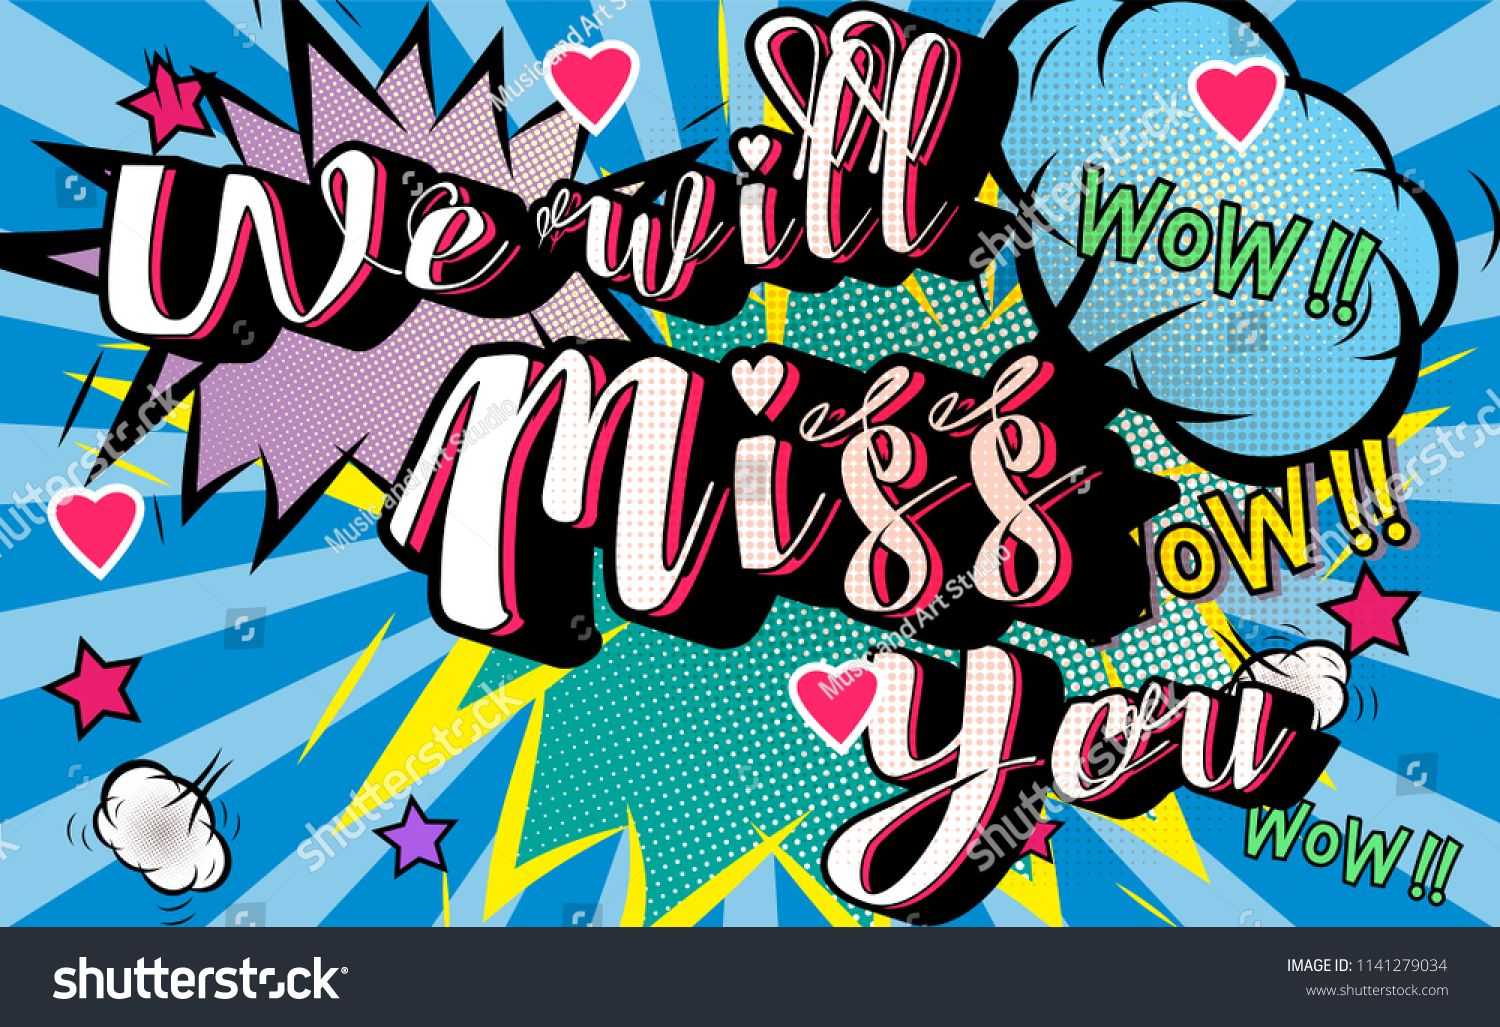 Farewell Party Template We Will Miss You Text Design Pop Art Comic Style Colorful Background For T Shirt Print Pop Art Comic Banner Printing Banner Template